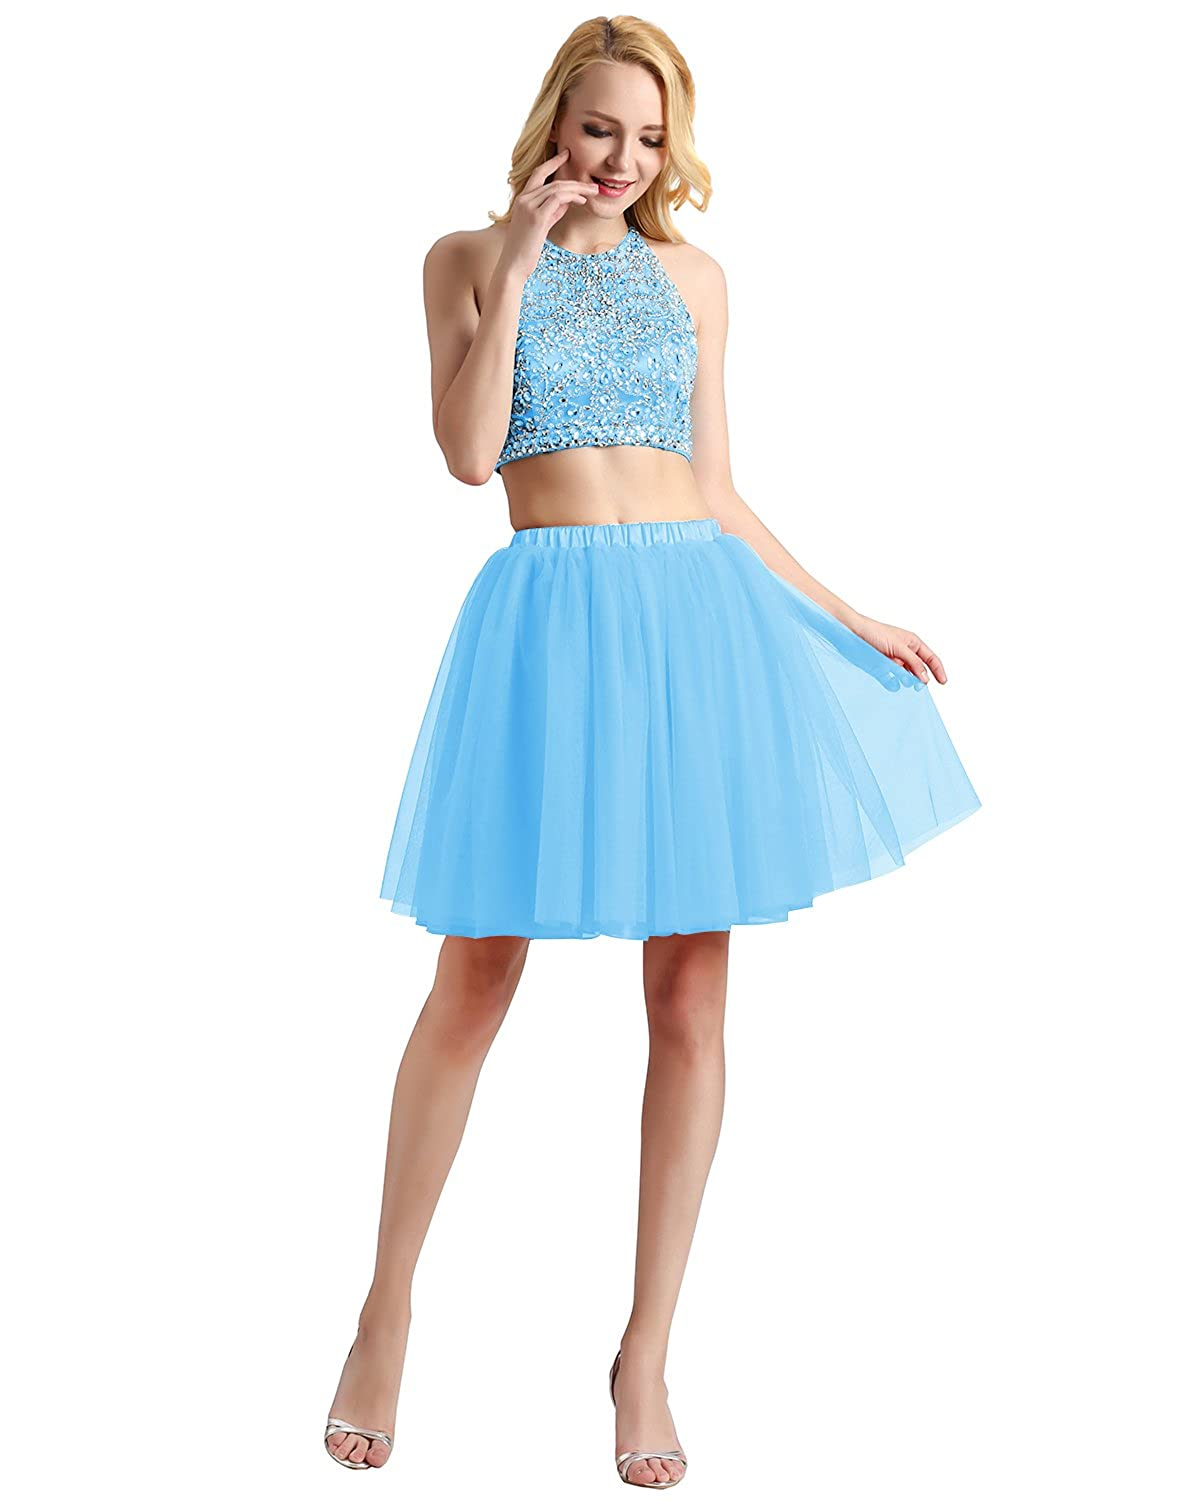 Bridesmay Women Short Tulle Formal Skirt Prom Party Evening Gown ...